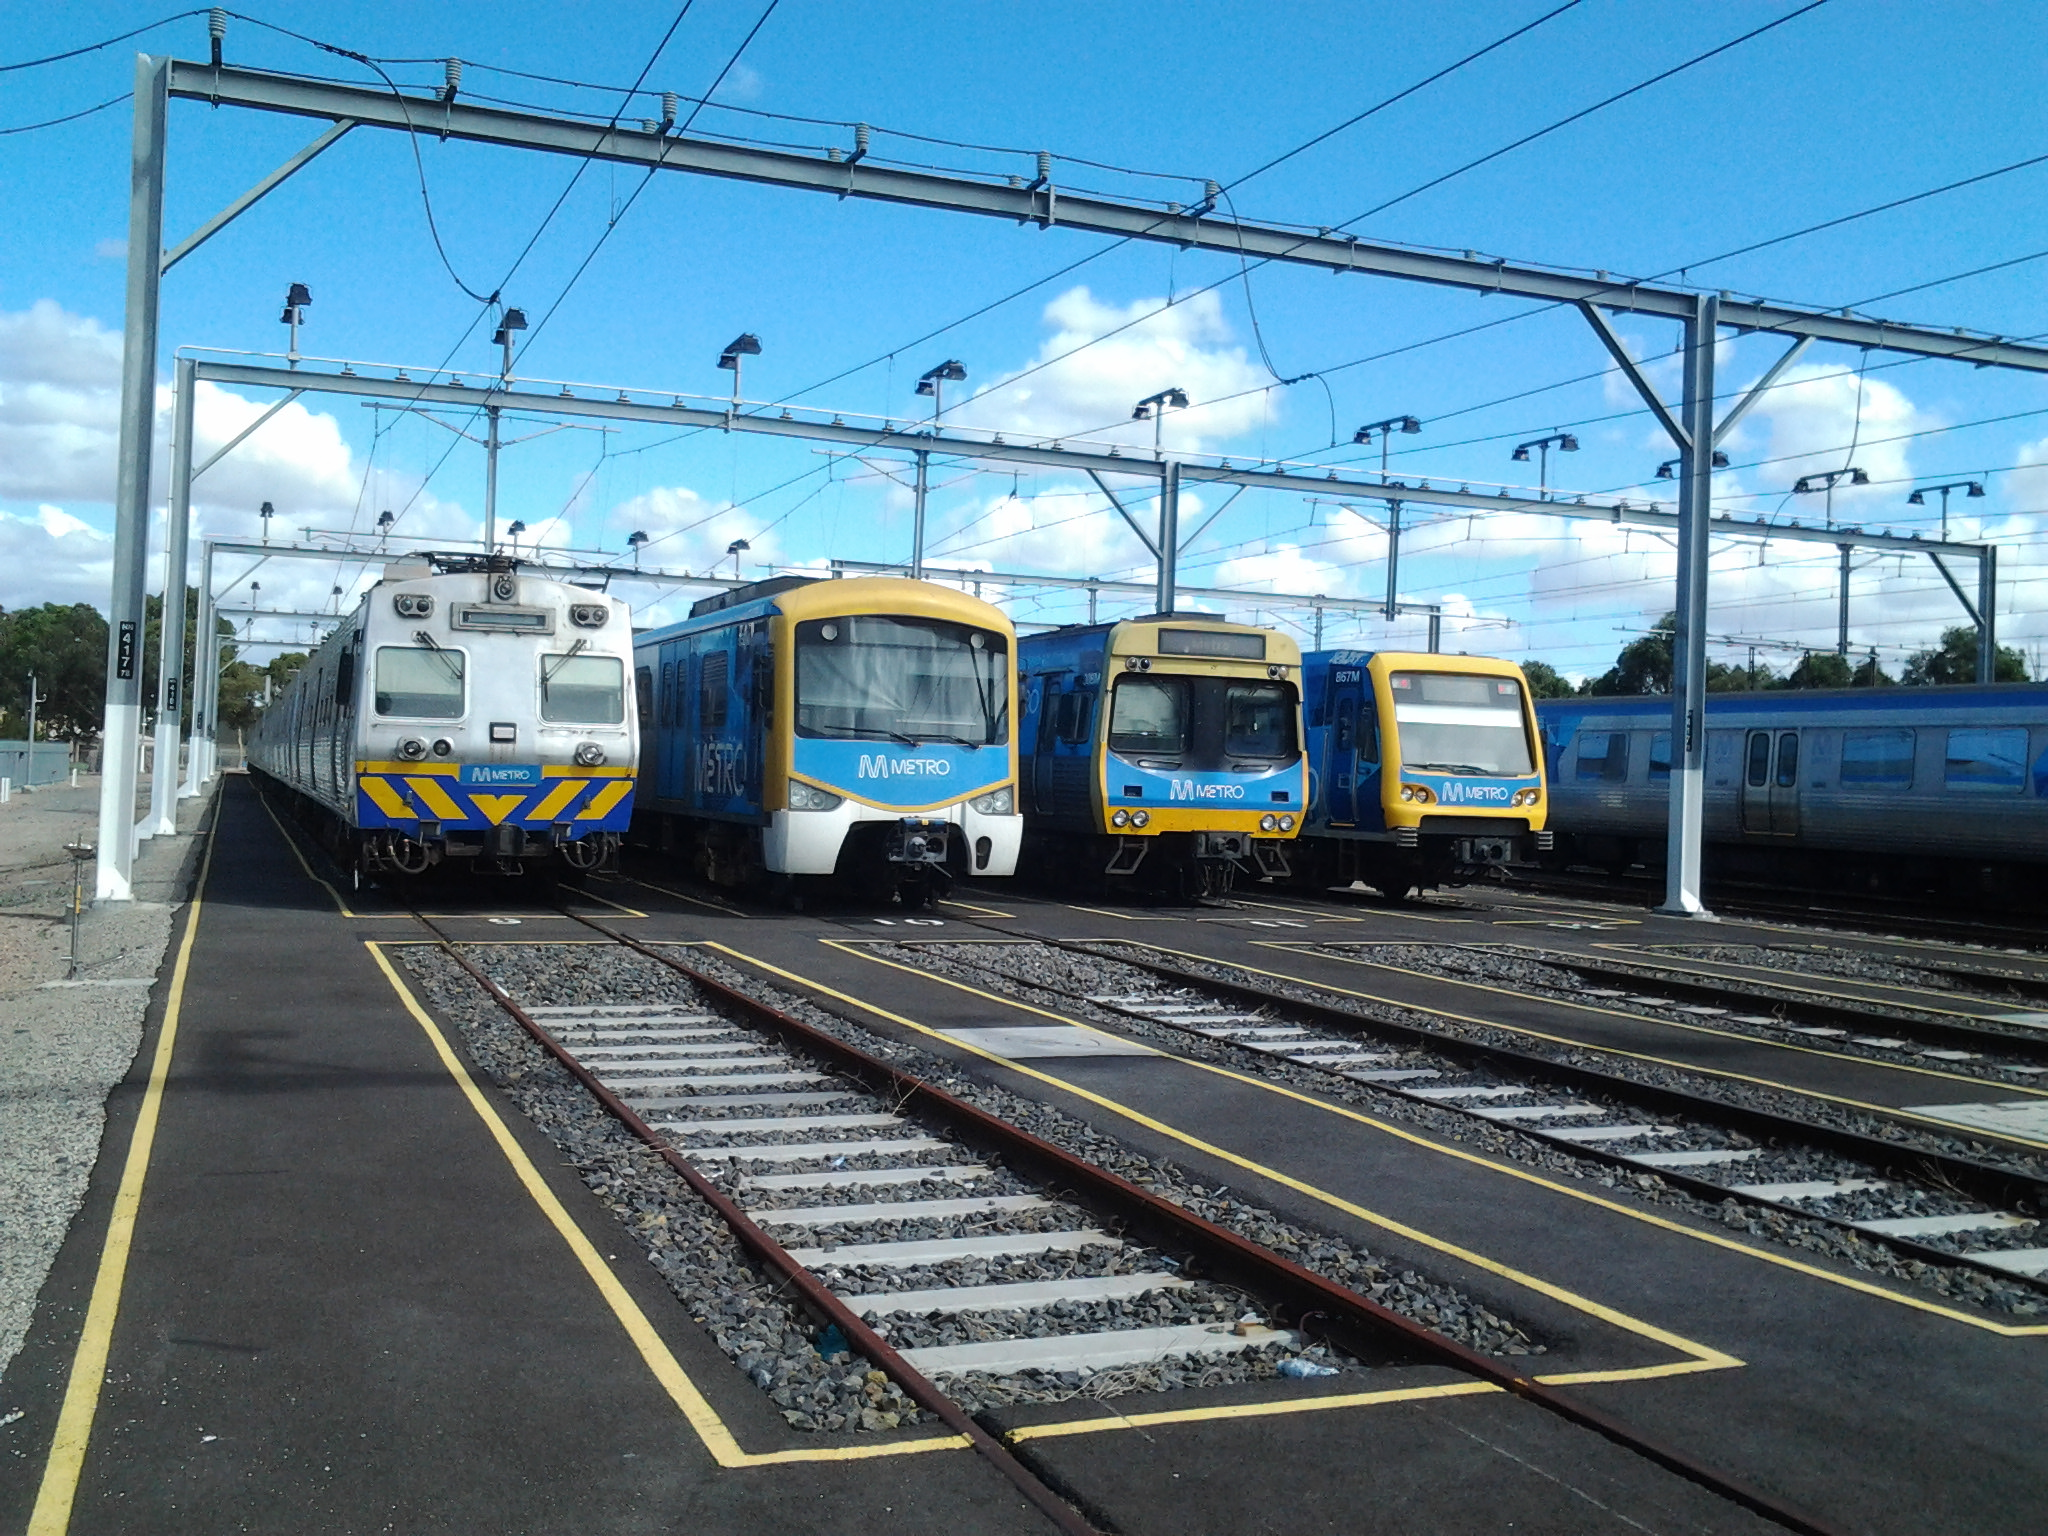 trains-in-a-row